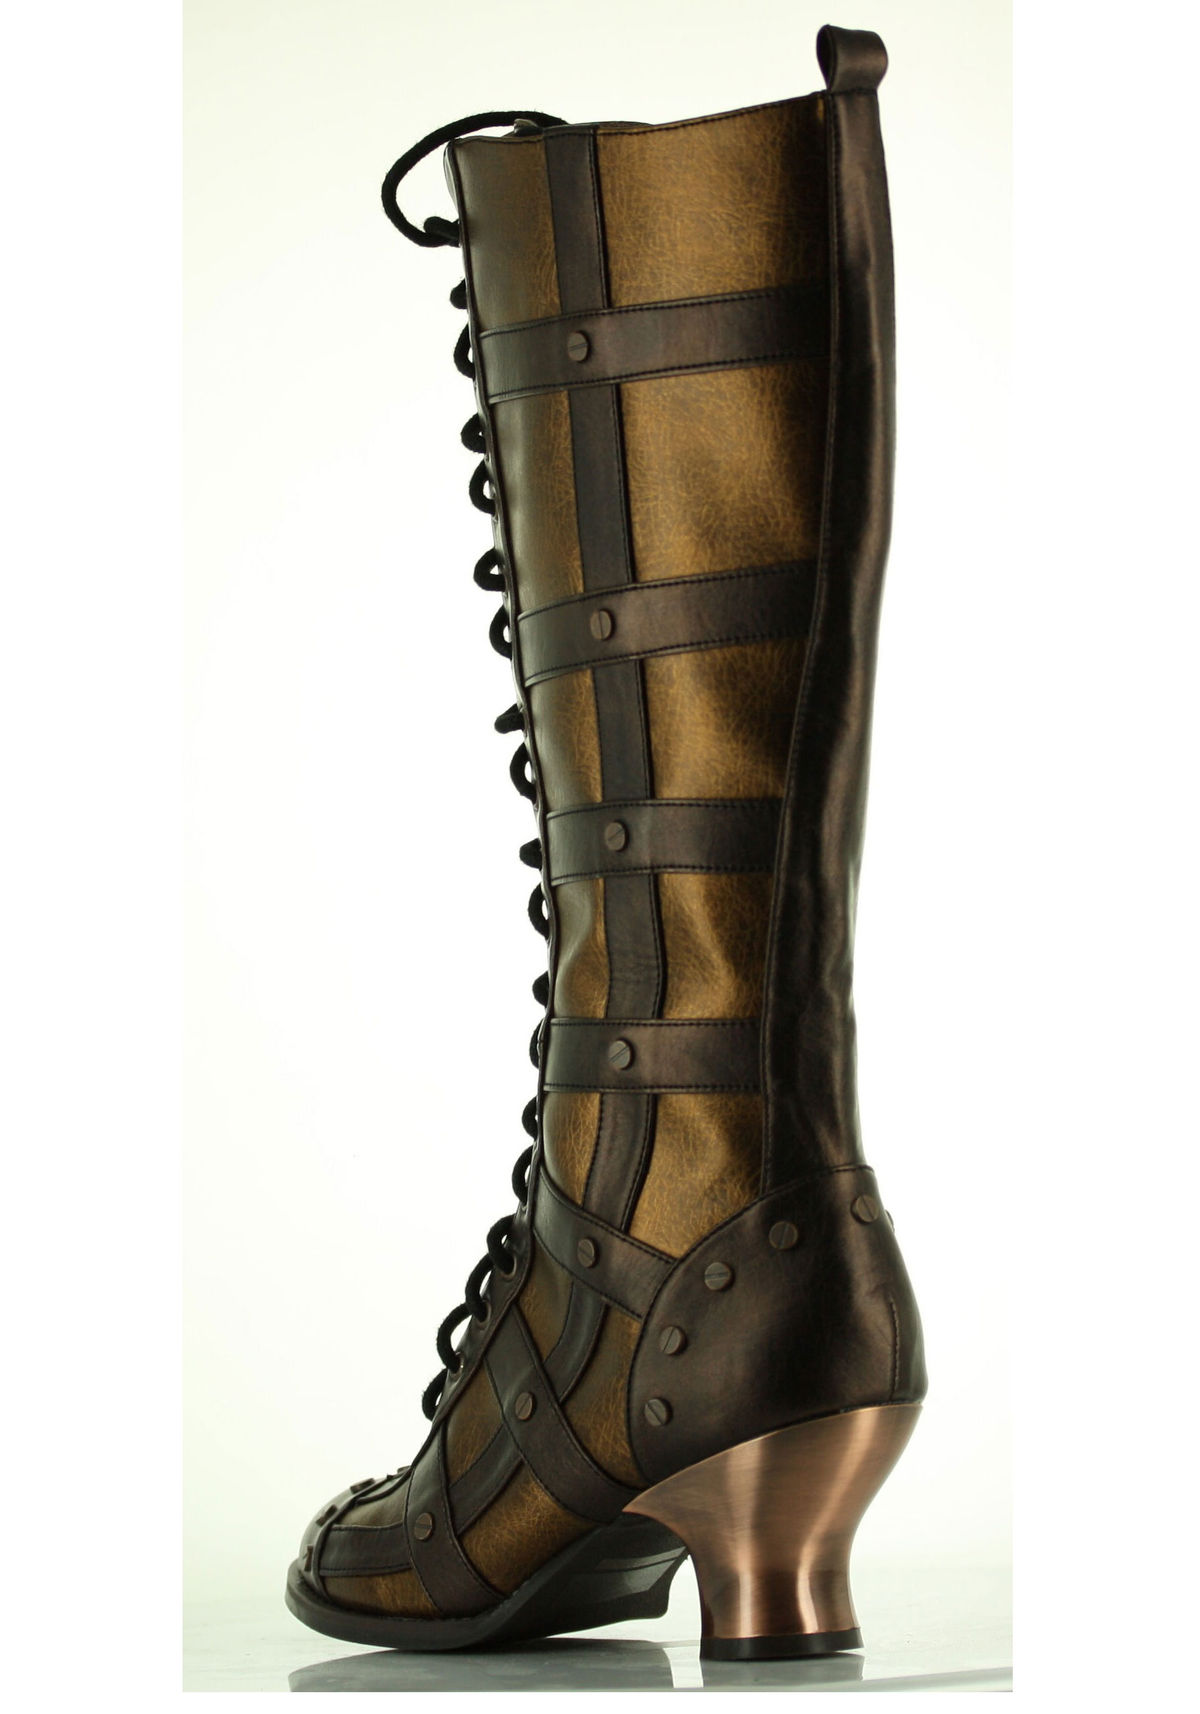 2019 year style- High thigh steampunk boots